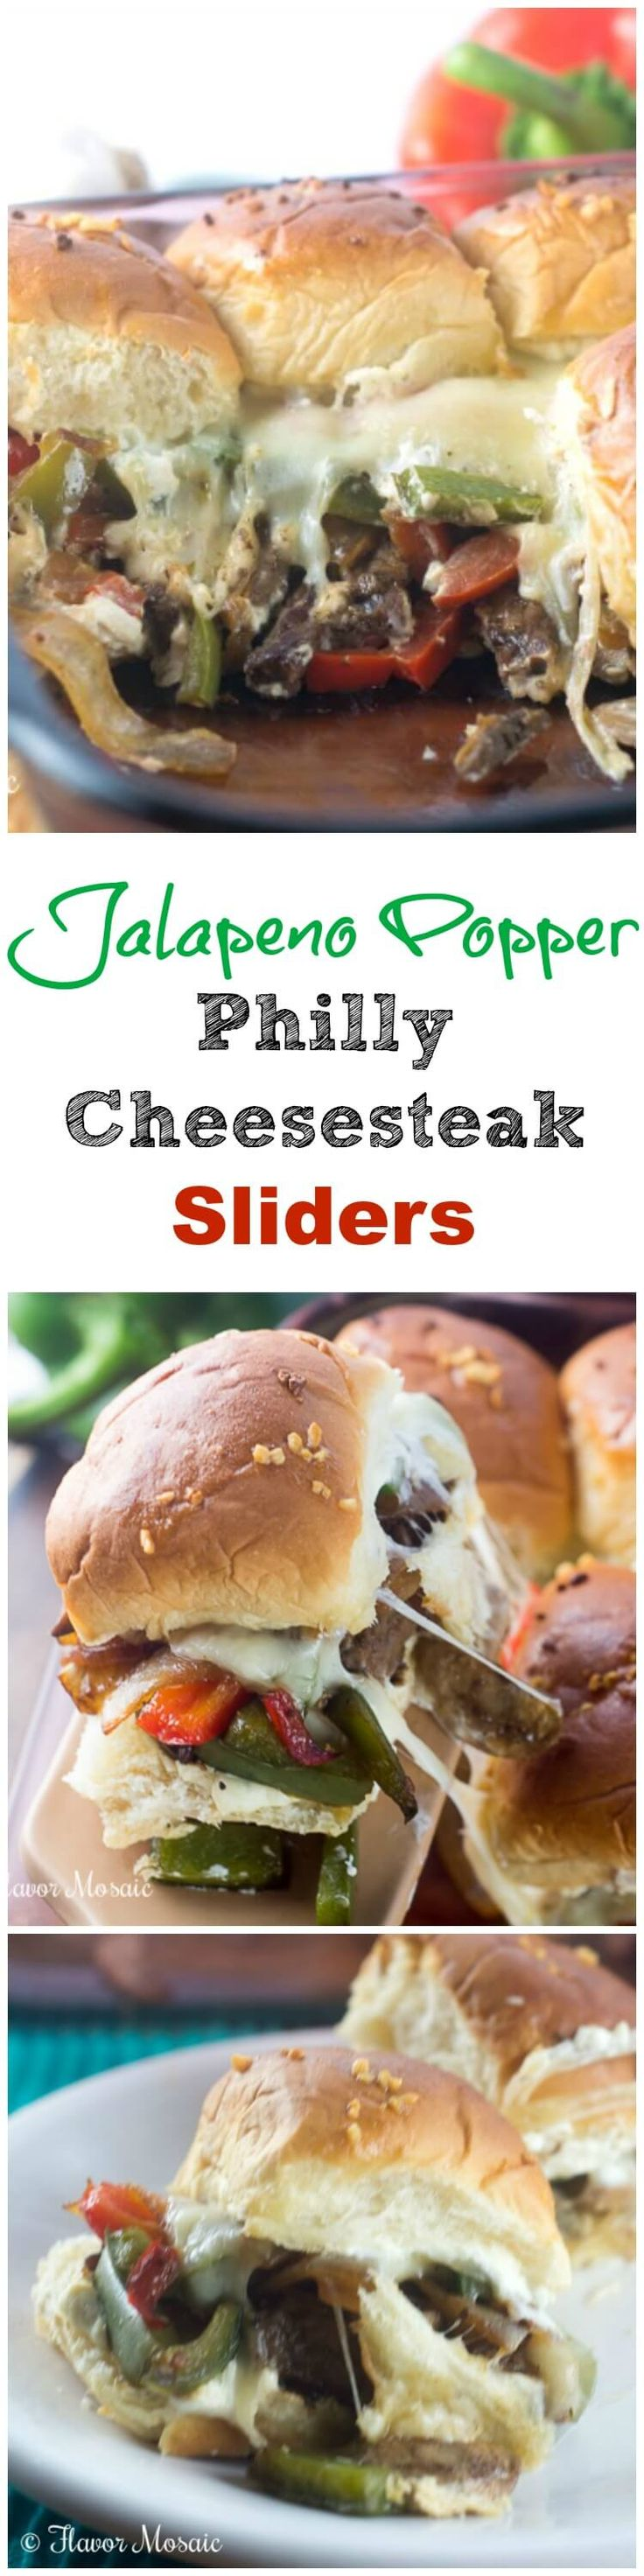 Jalapeno Popper Philly Cheesesteak Sliders combine your favorite game day appetizers into one delicious cheesy, savory and spicy mini sandwich slider that is perfect for any party. ~ http://FlavorMosaic.com